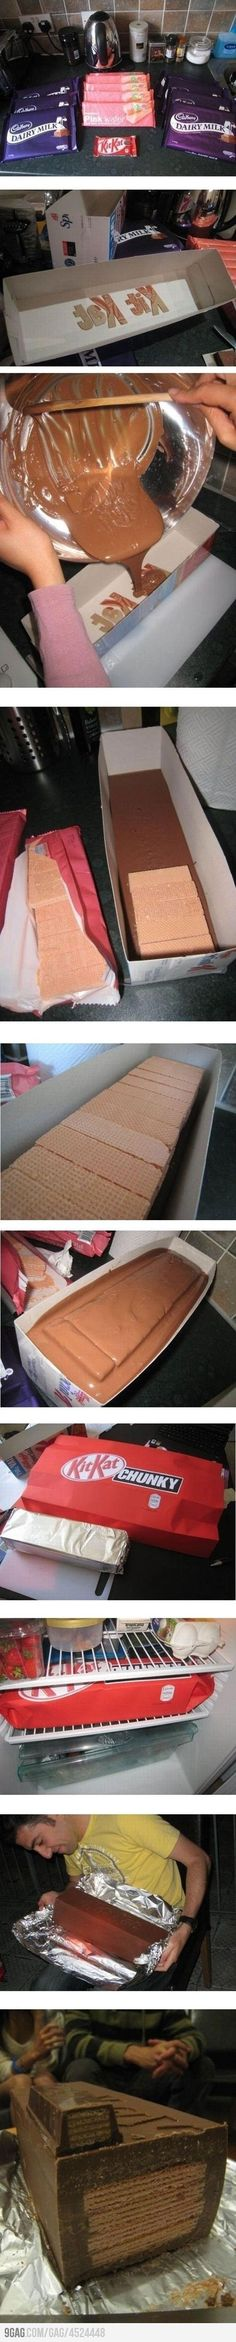 Kit Kat CHUNK :: my boyfriend might get this as a gift one day. xD